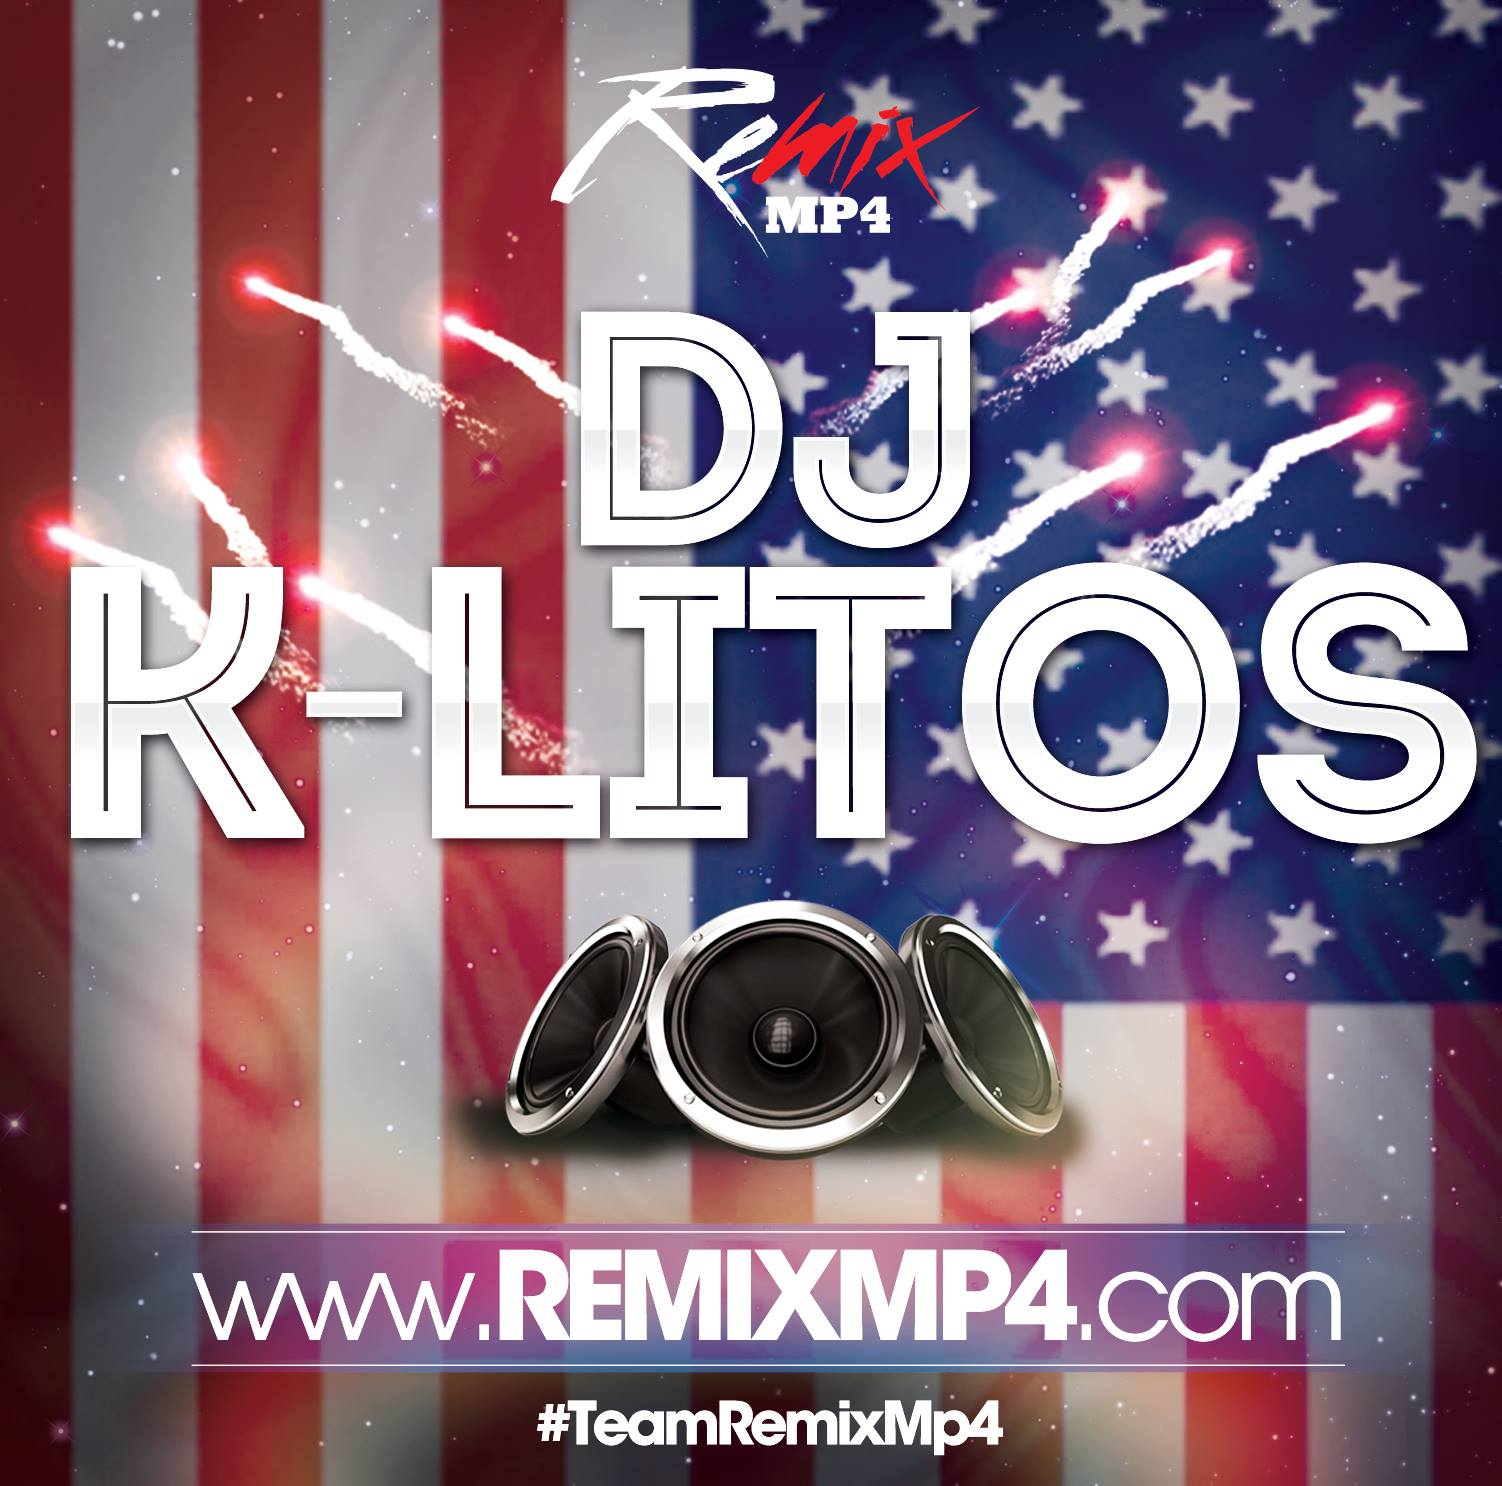 Special REC New Edition [Dj K-litos]